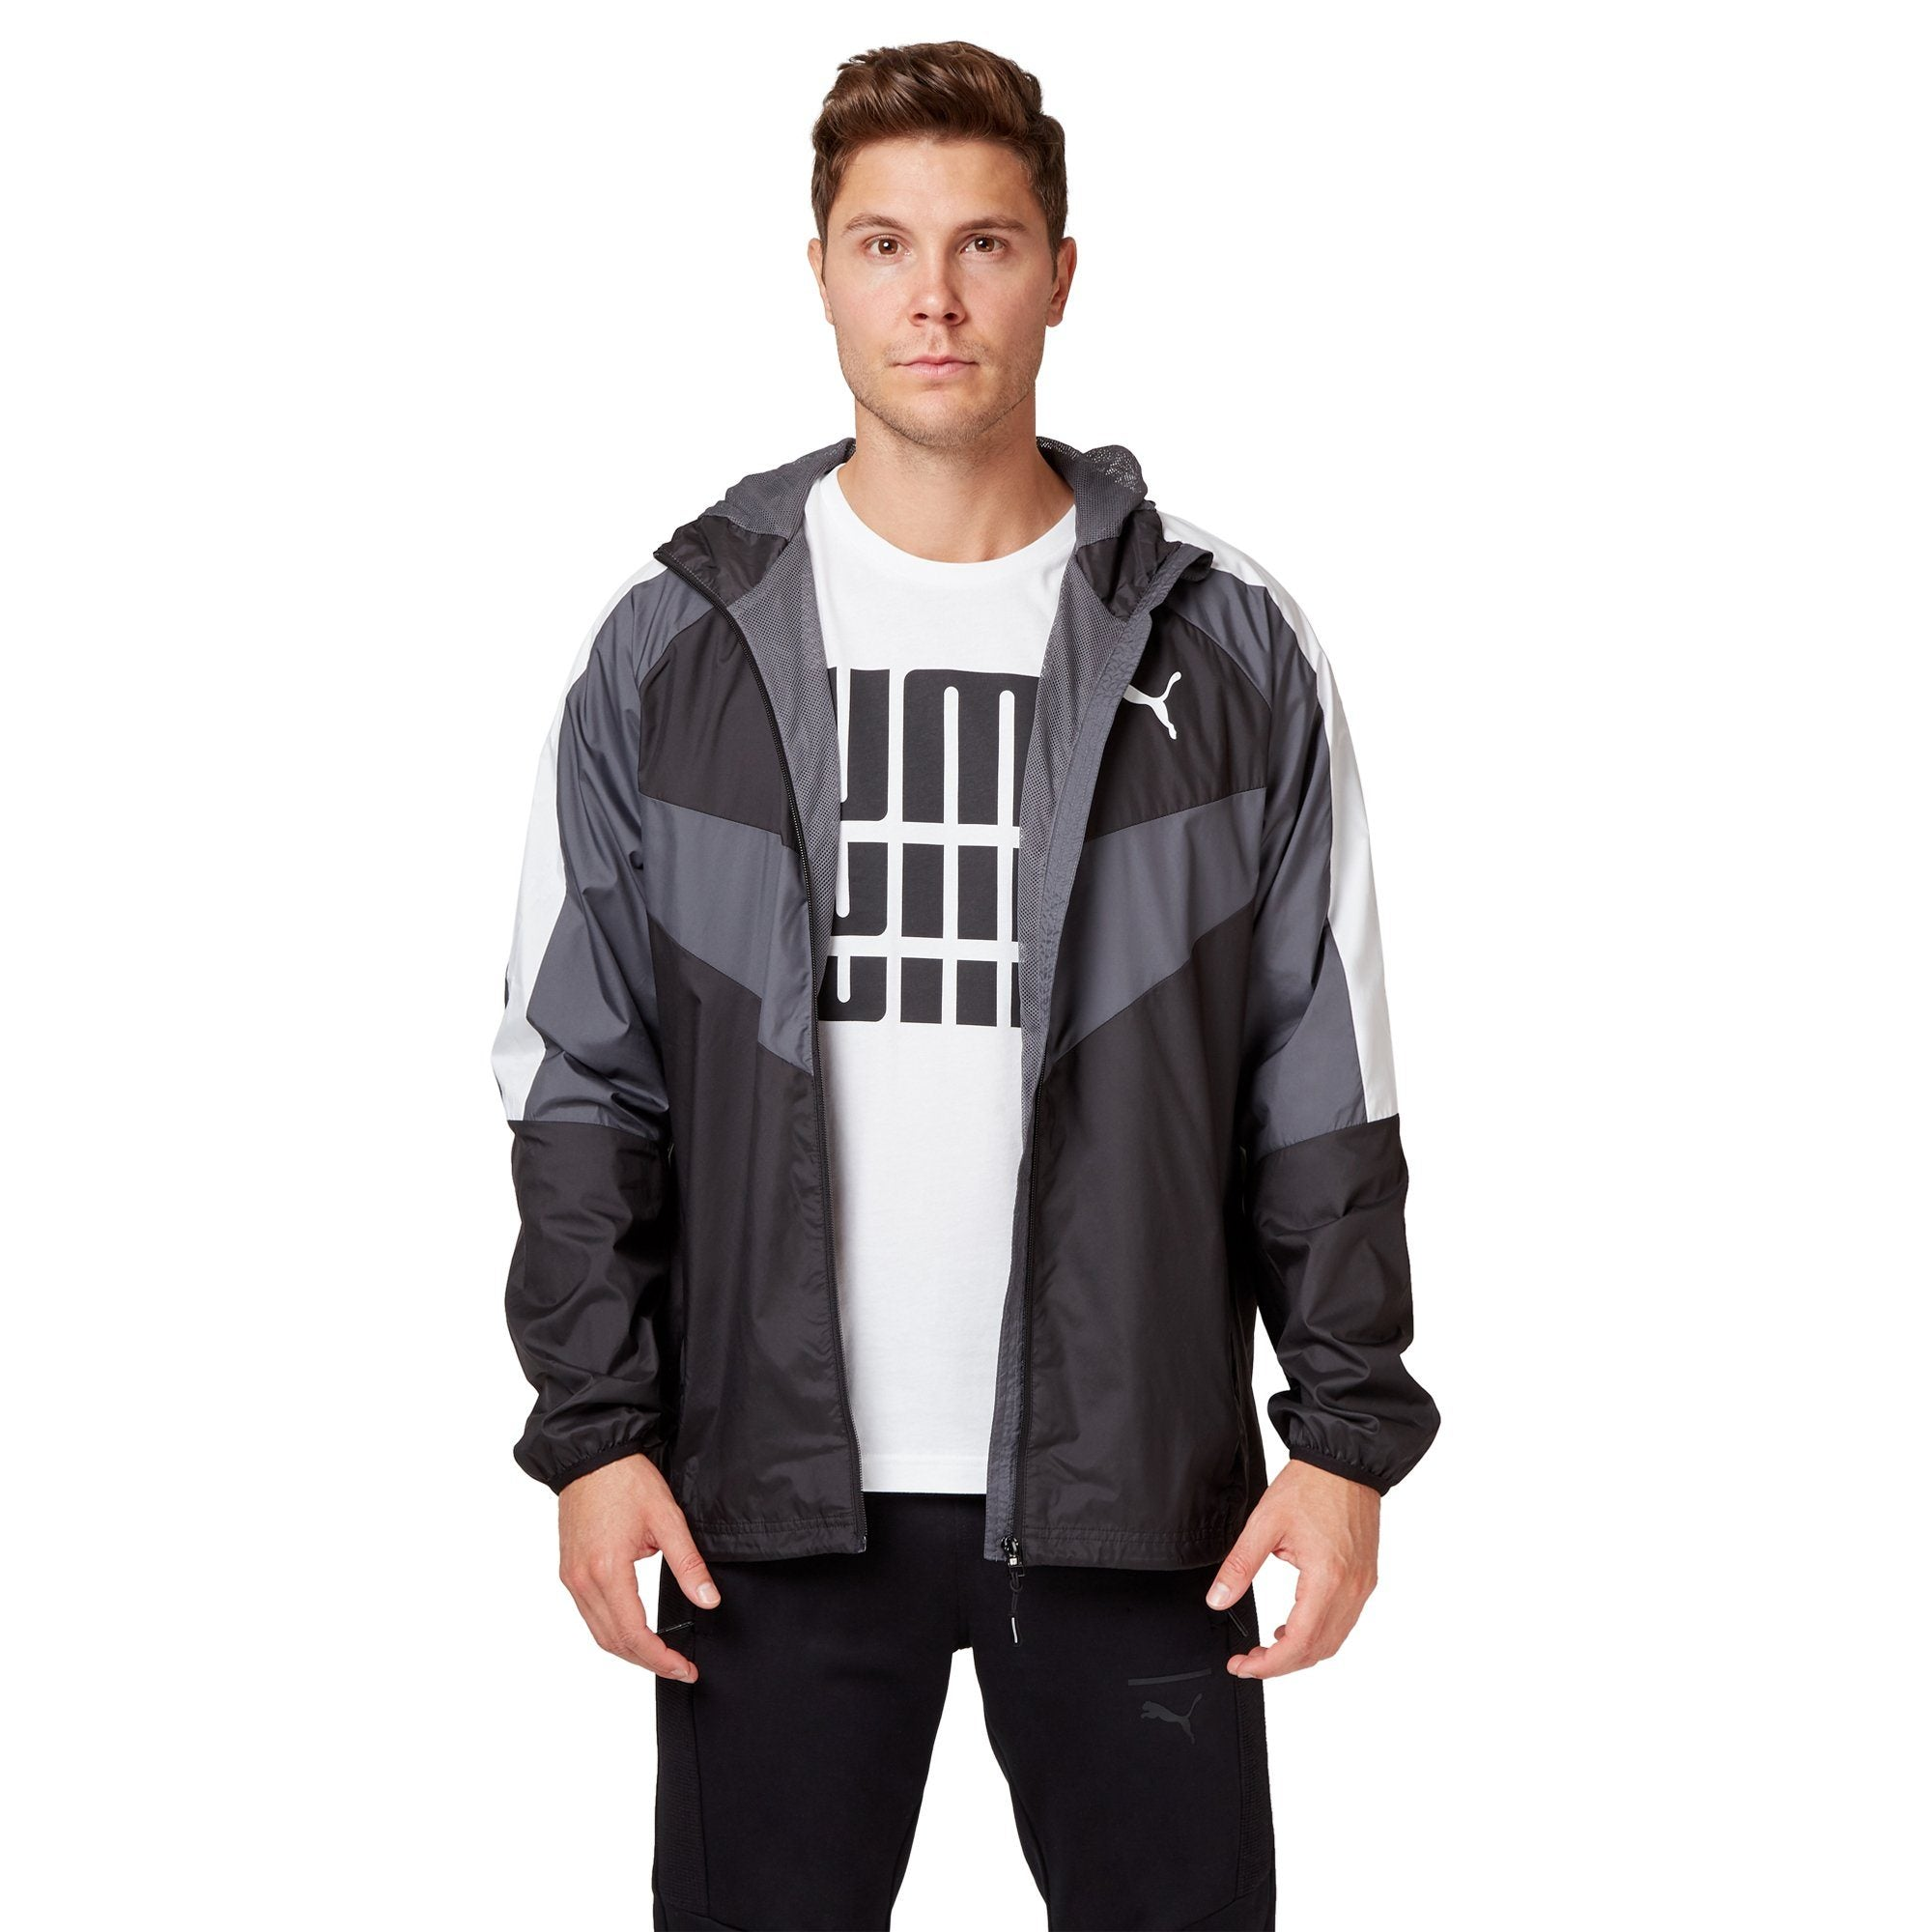 Puma Men's PWRVent Windbreaker Jacket - Black Apparel Puma